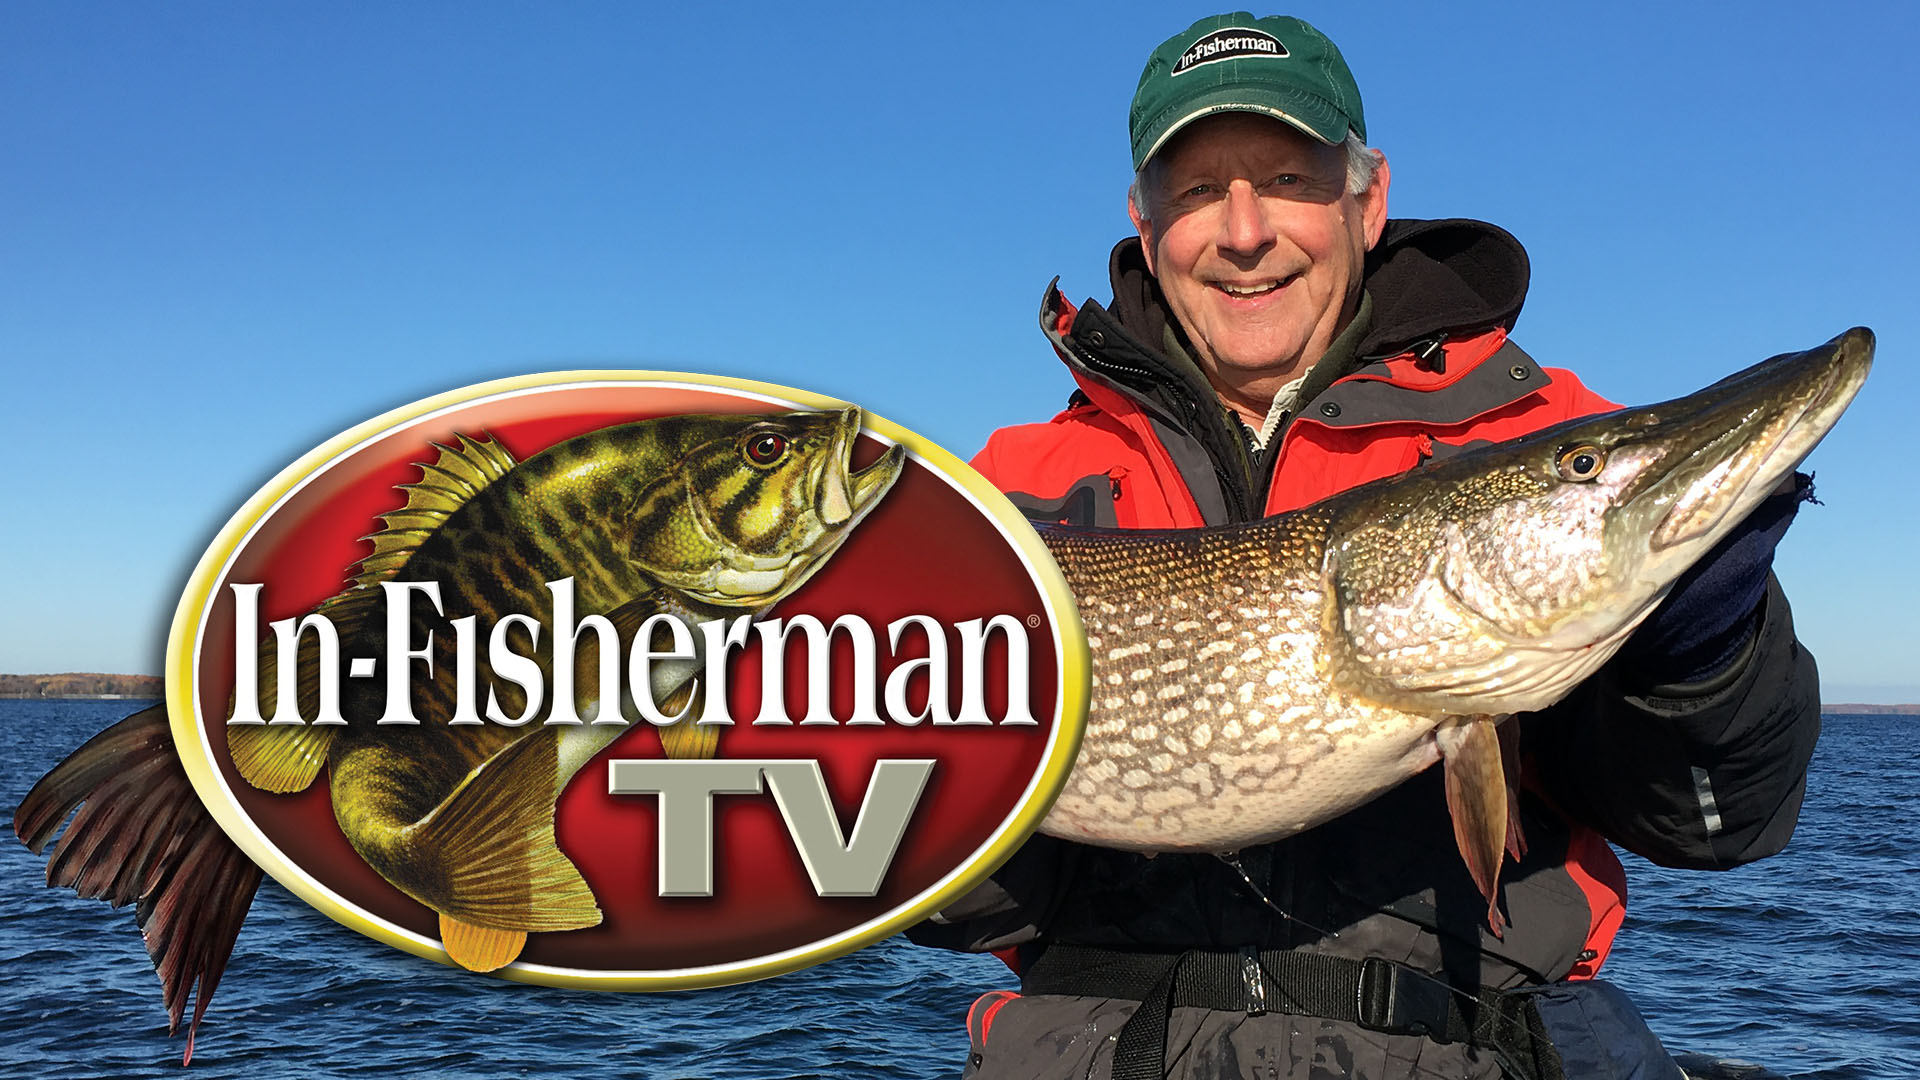 In-Fisherman TV